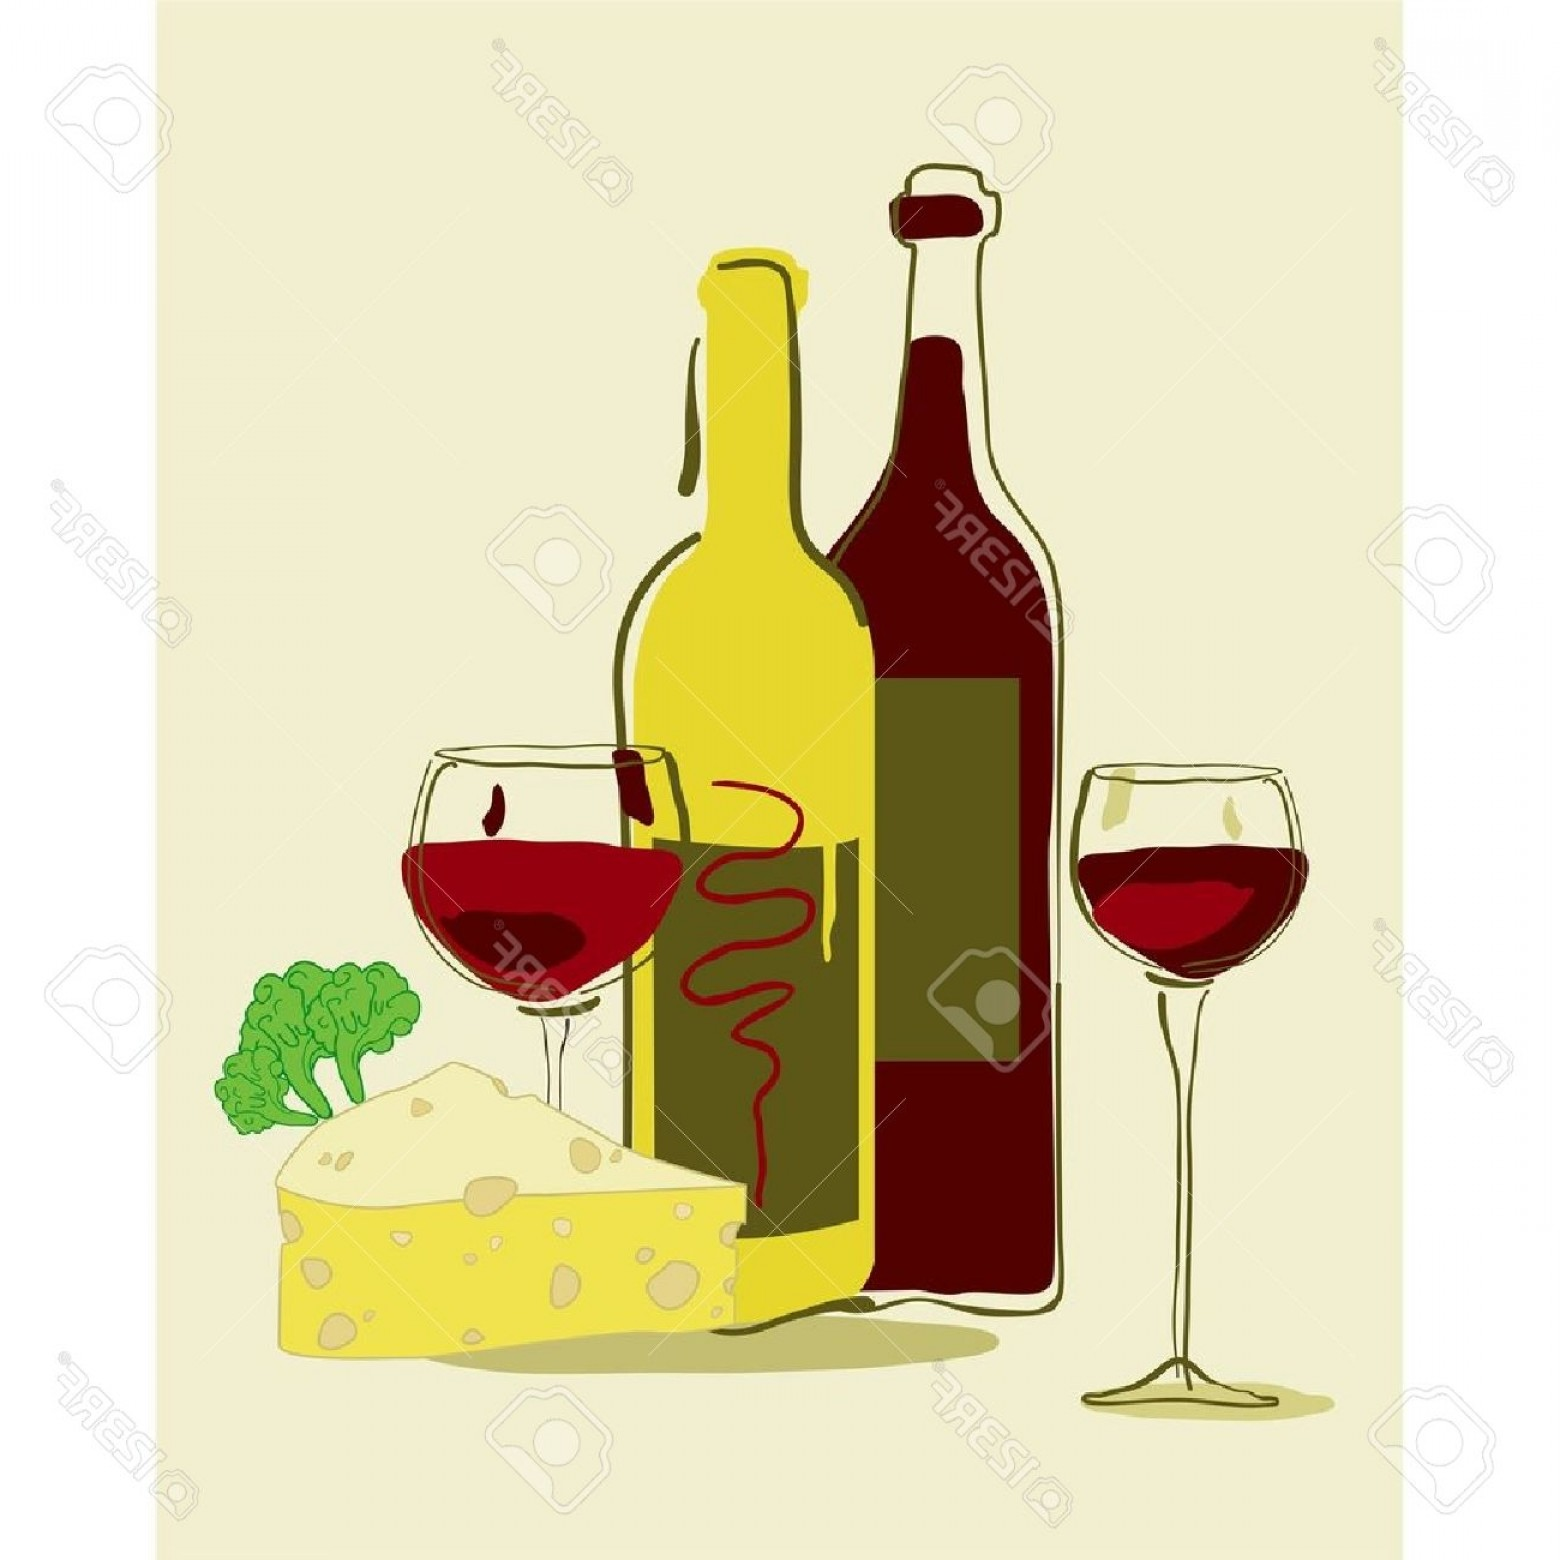 Free Wine Party Cliparts, Download Free Clip Art, Free Clip Art on.